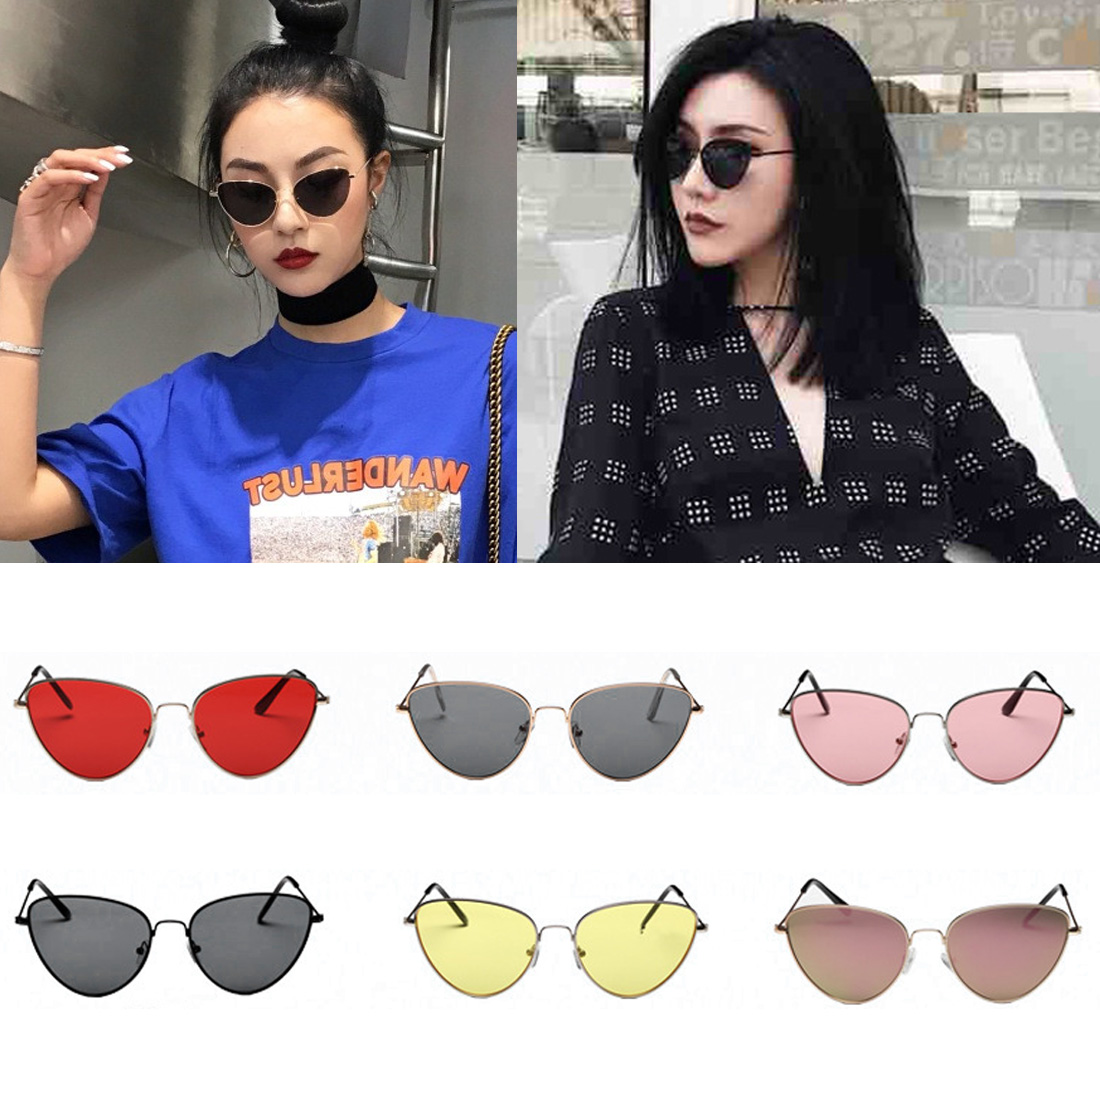 Cat eye shade for women fashion sunglasses brand woman vintage retro triangular cateye glasses oculos feminino sunglasses sexy in Women 39 s Sunglasses from Apparel Accessories